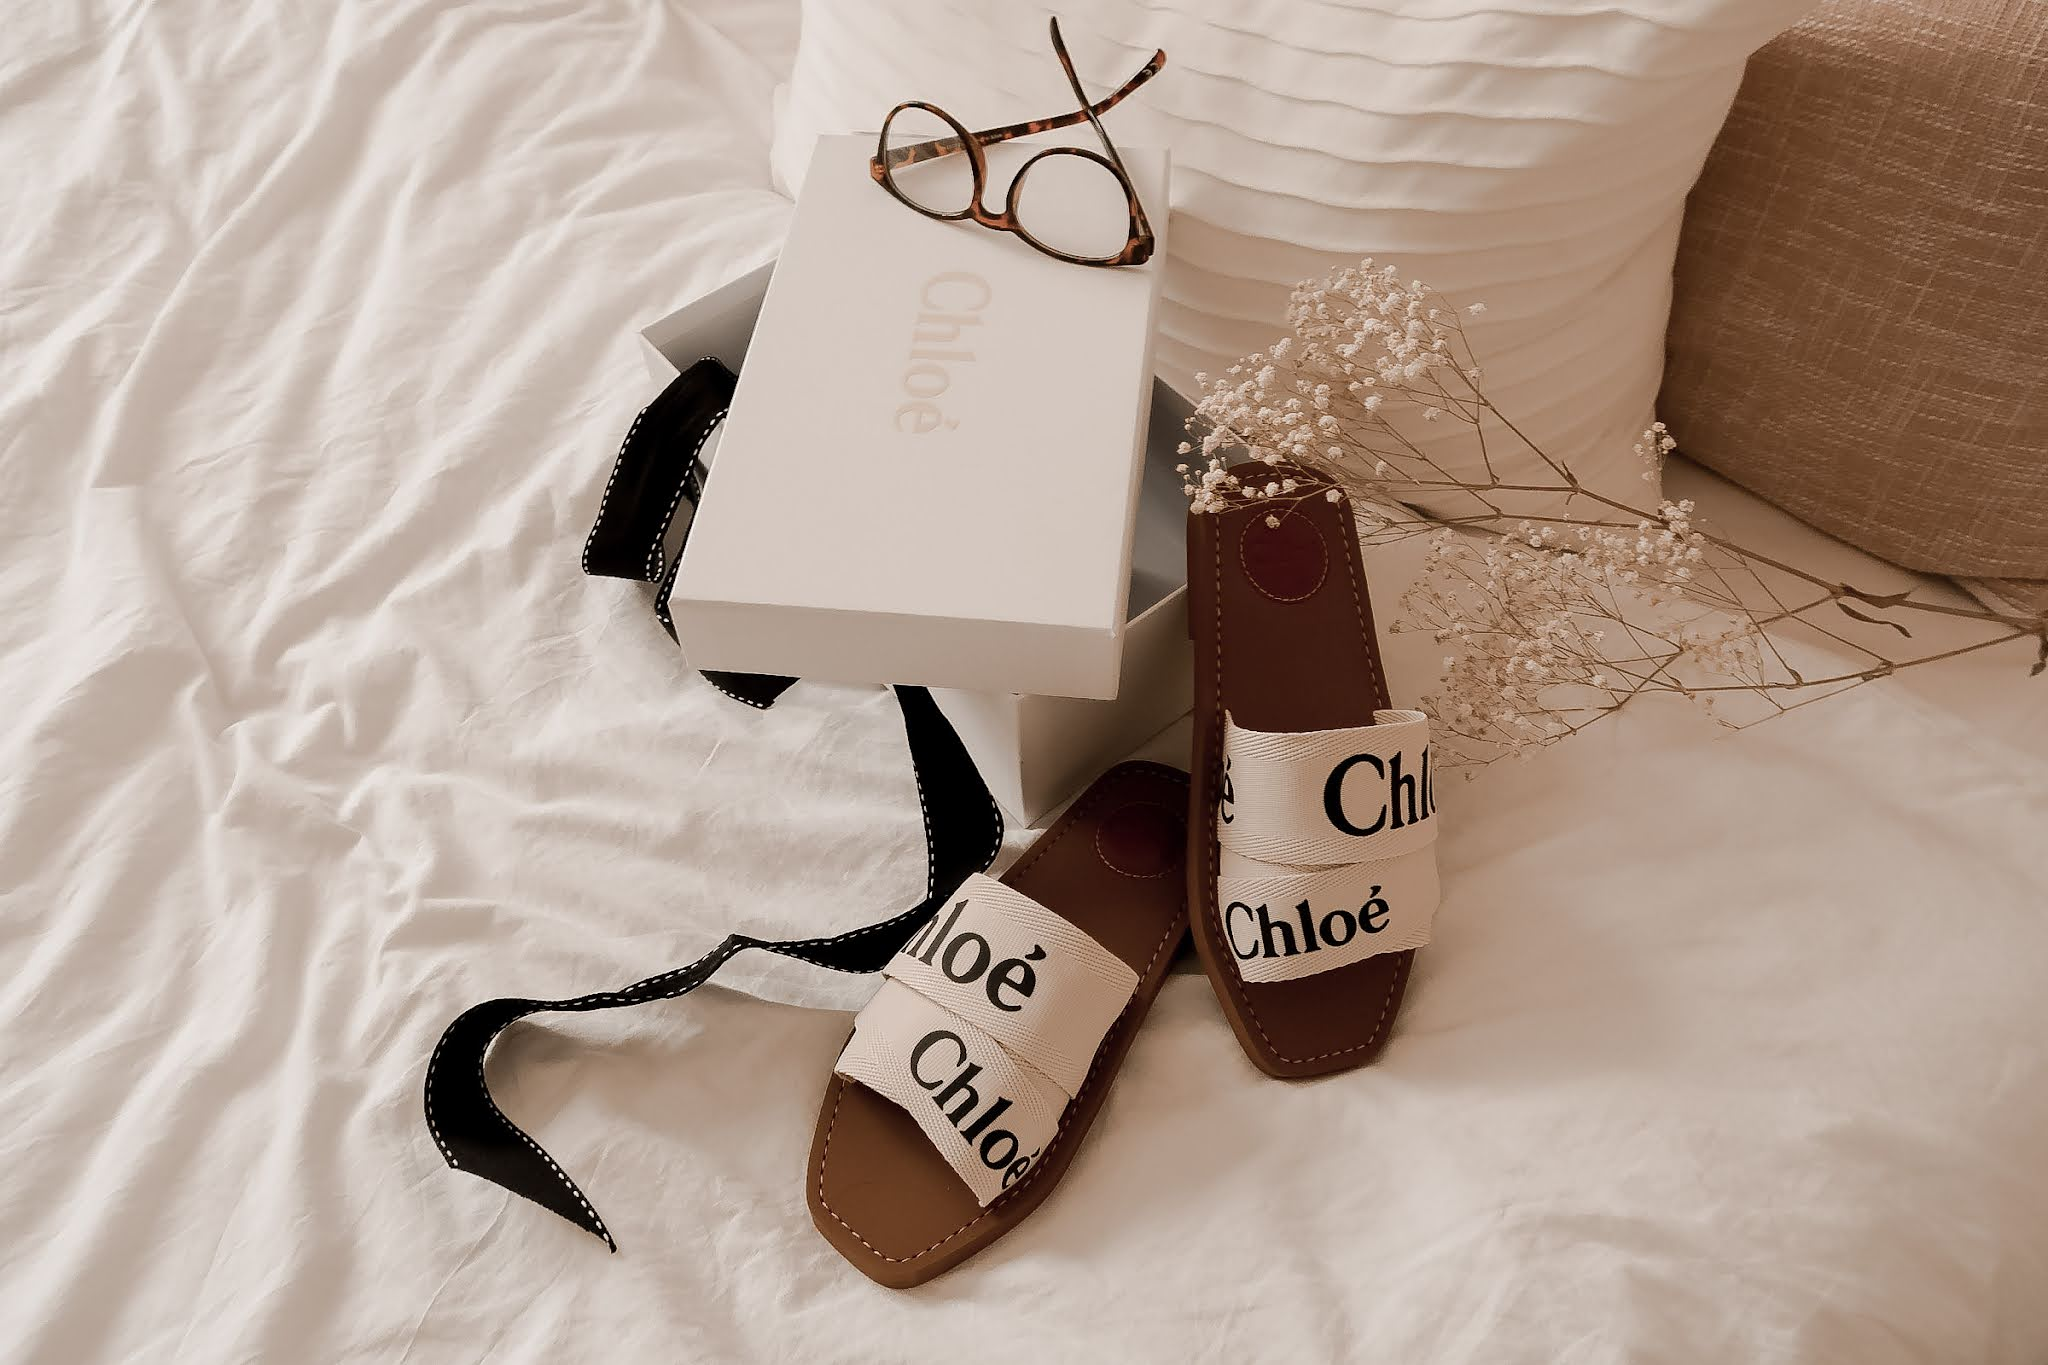 Chloe Woody Sandals: Are They Worth It?